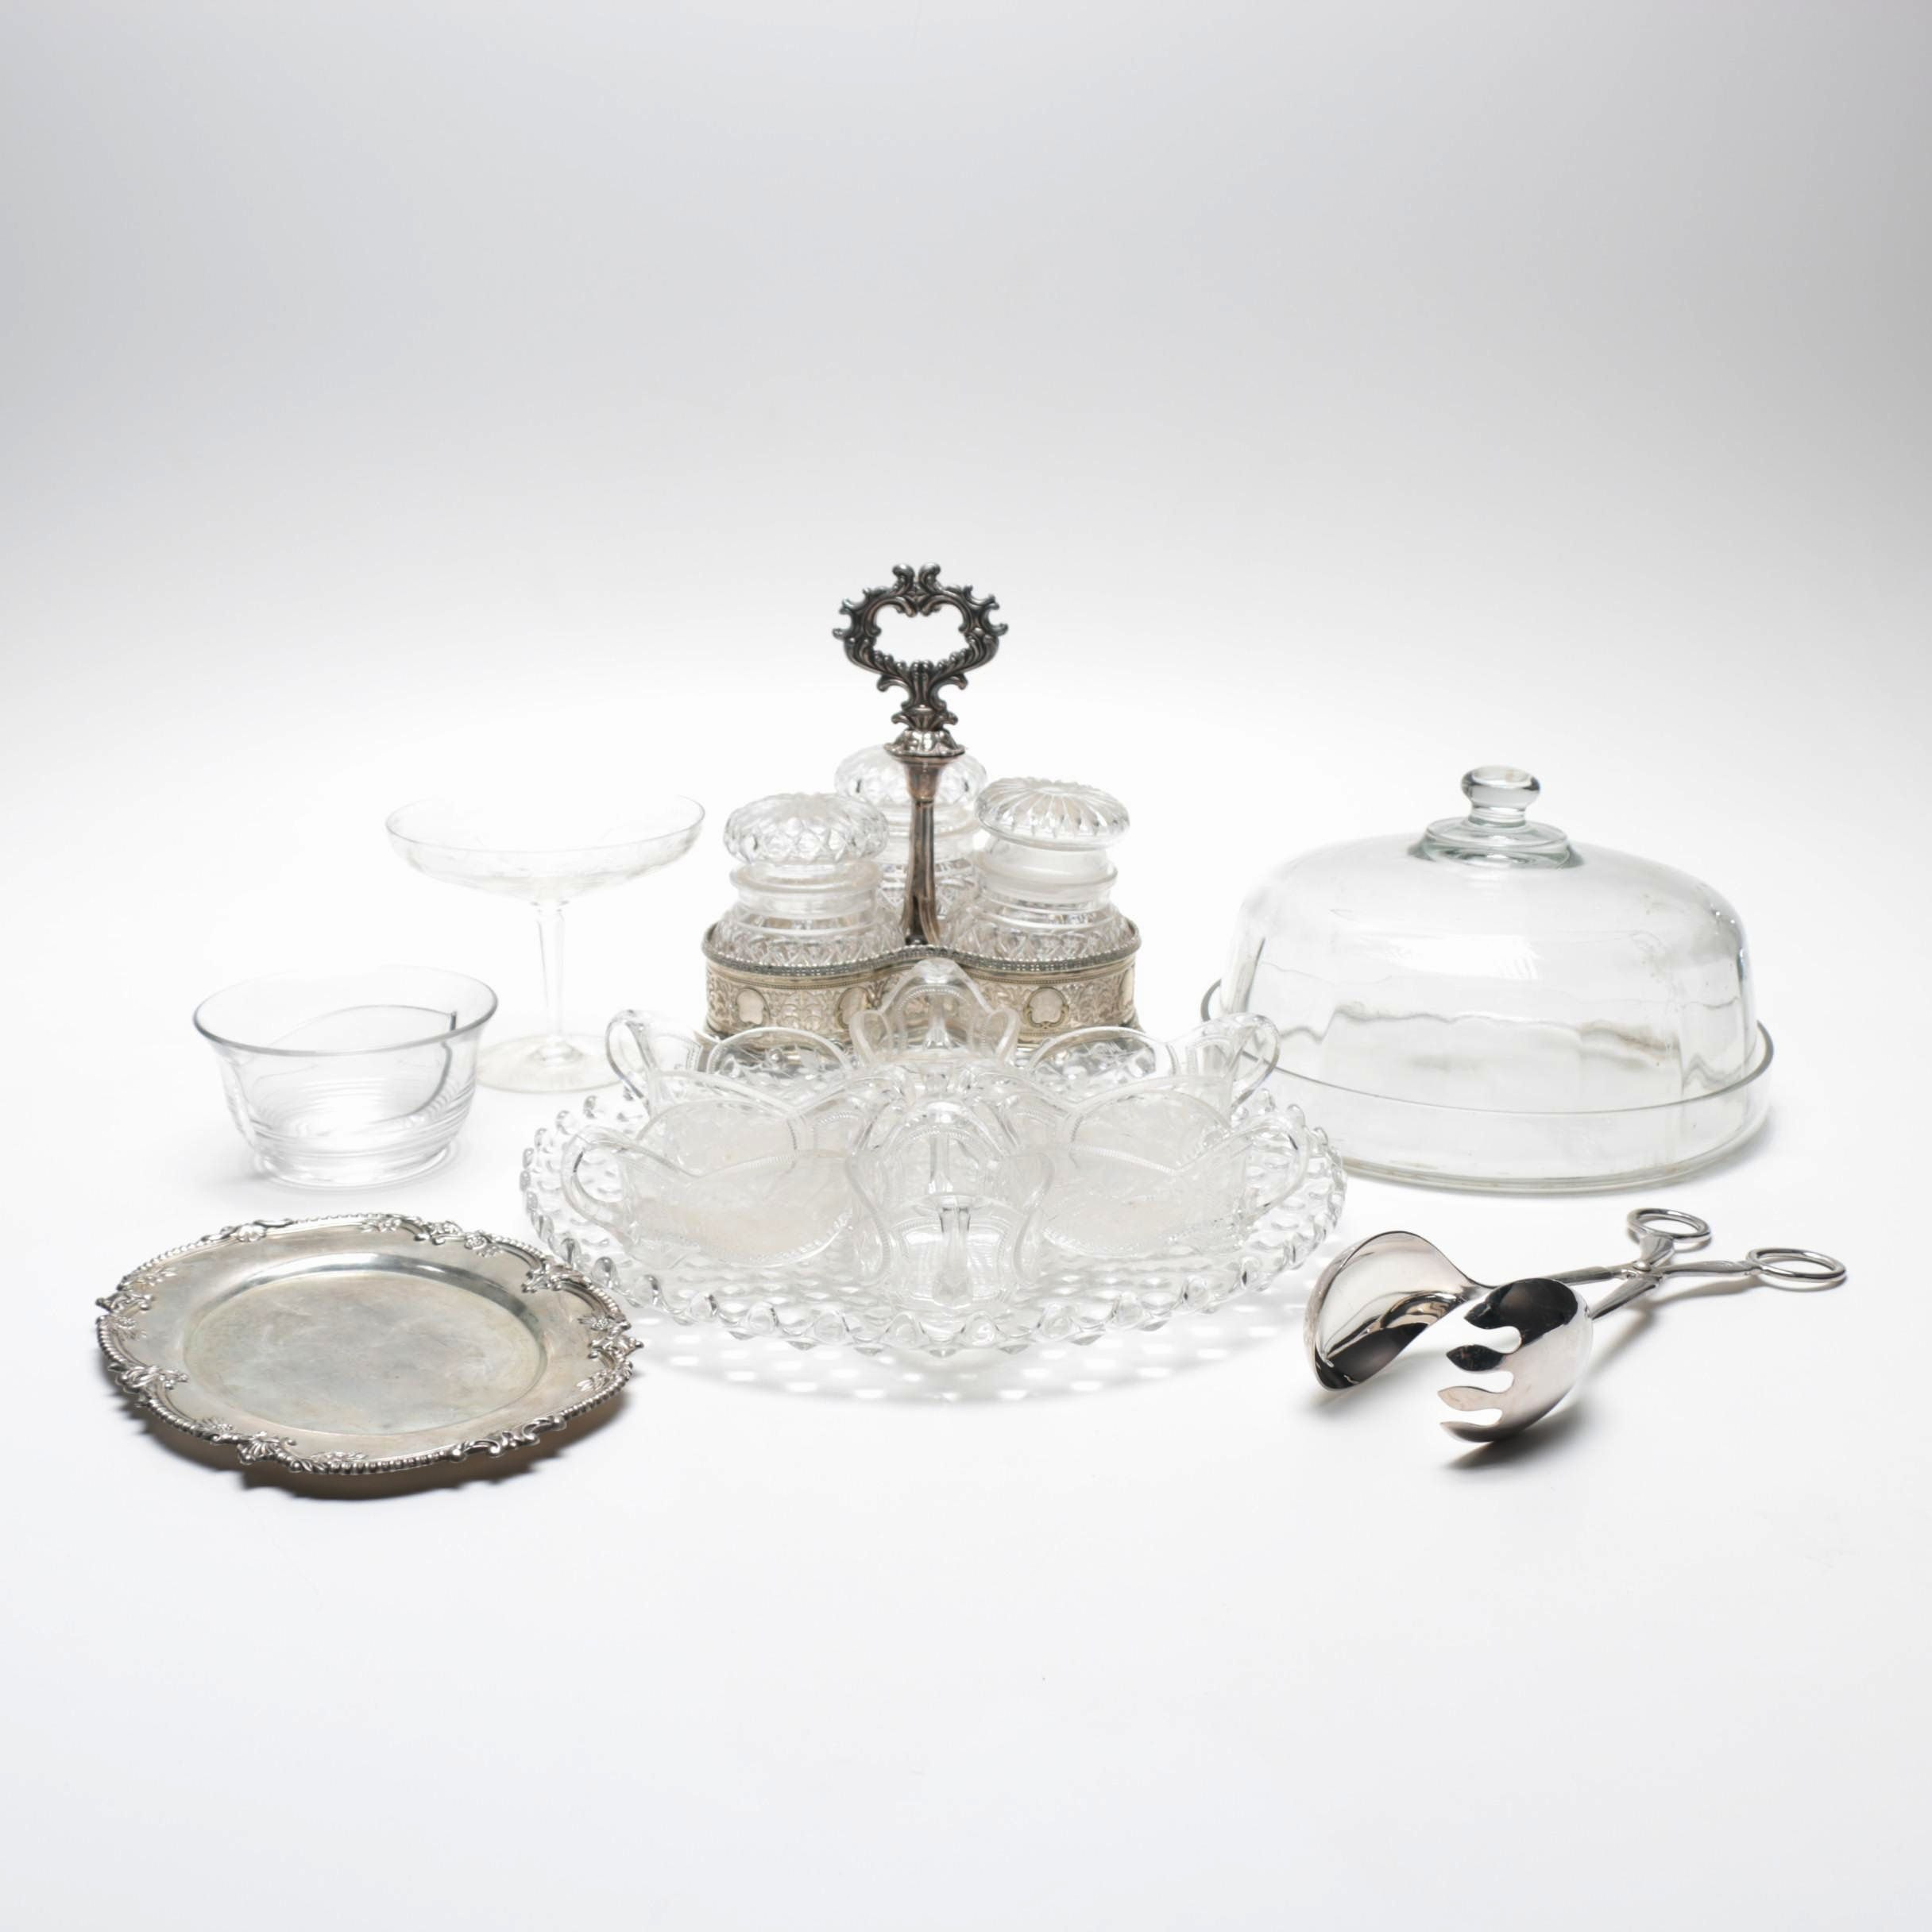 Collection of Vintage Glass Crystal and Silver Plated Entertaining Essentials